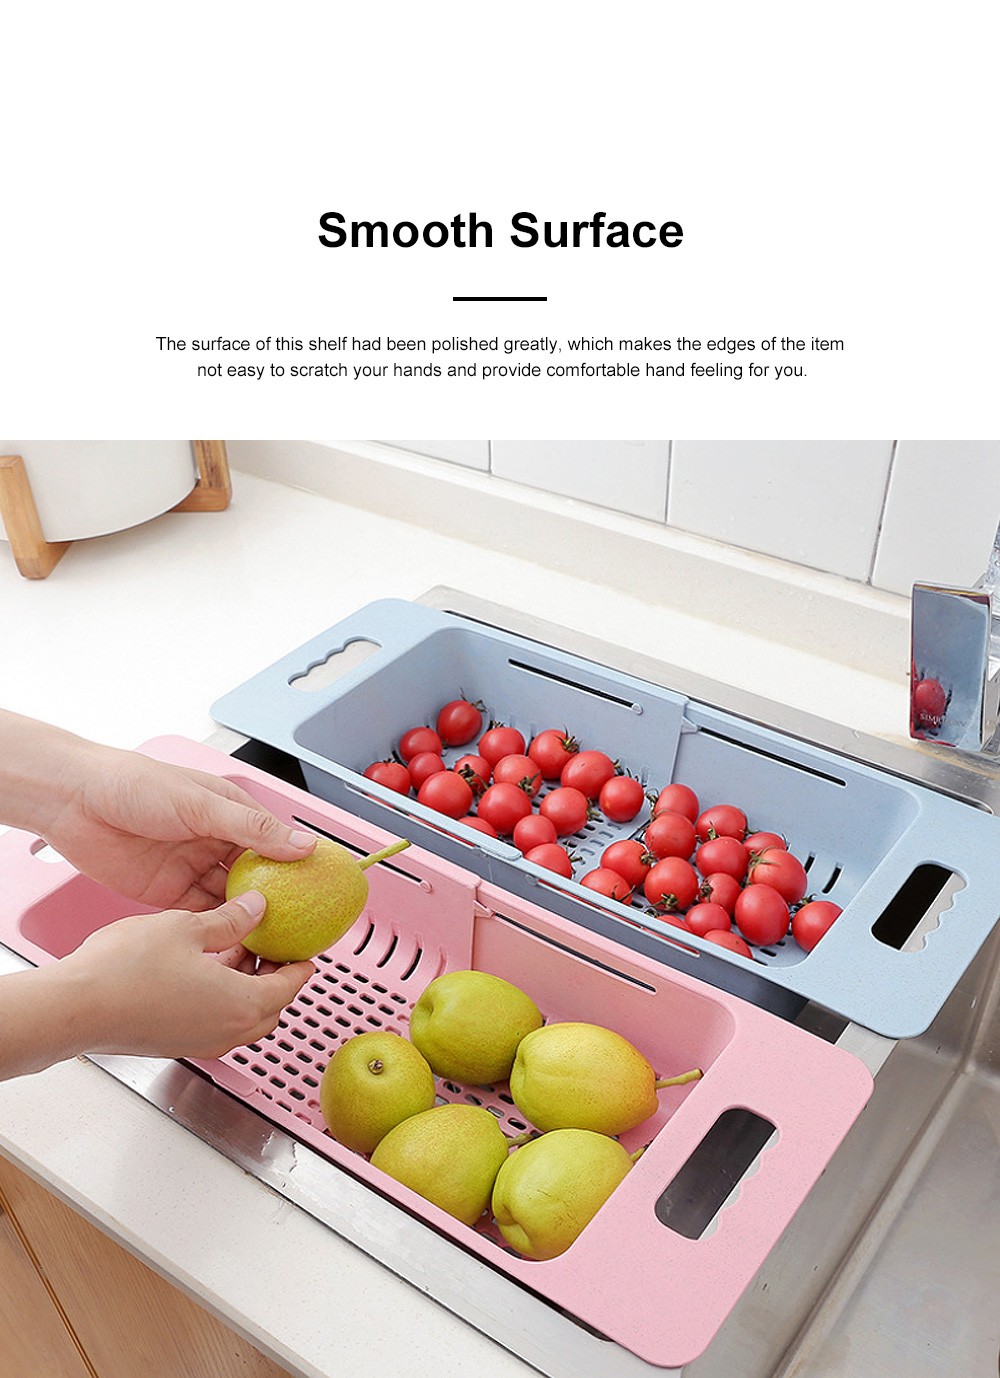 Functional Environmentally-friendly Wheat Straw Stretchable Vegetable Fruit Water Sink Draining Shelf Basket Storage Rack 3